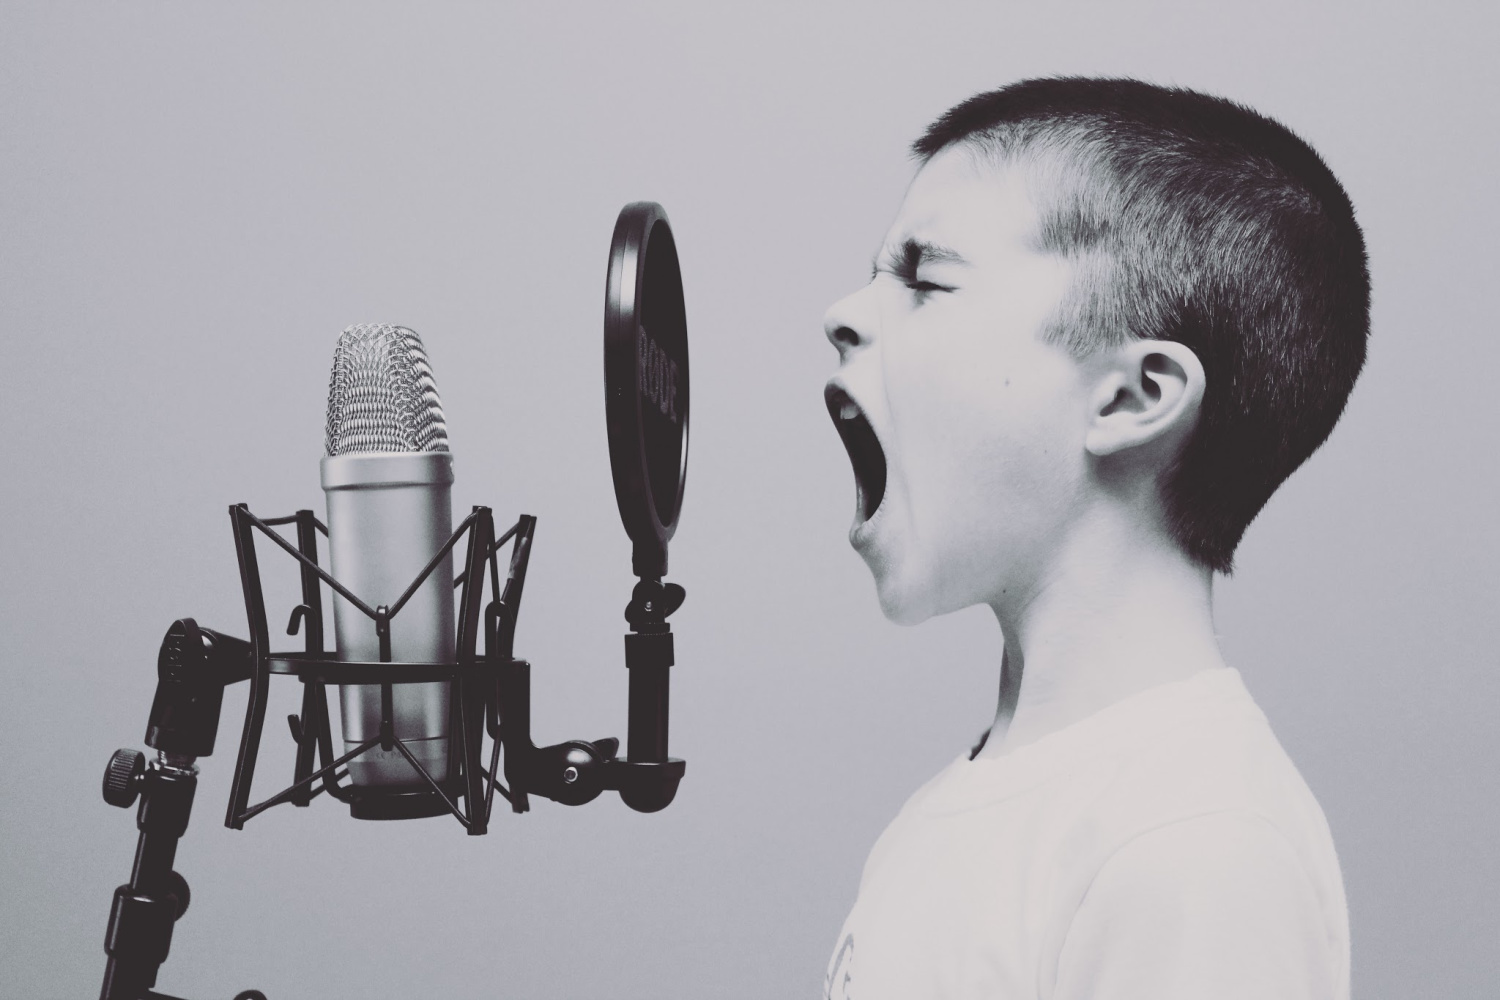 child screaming into a microphone